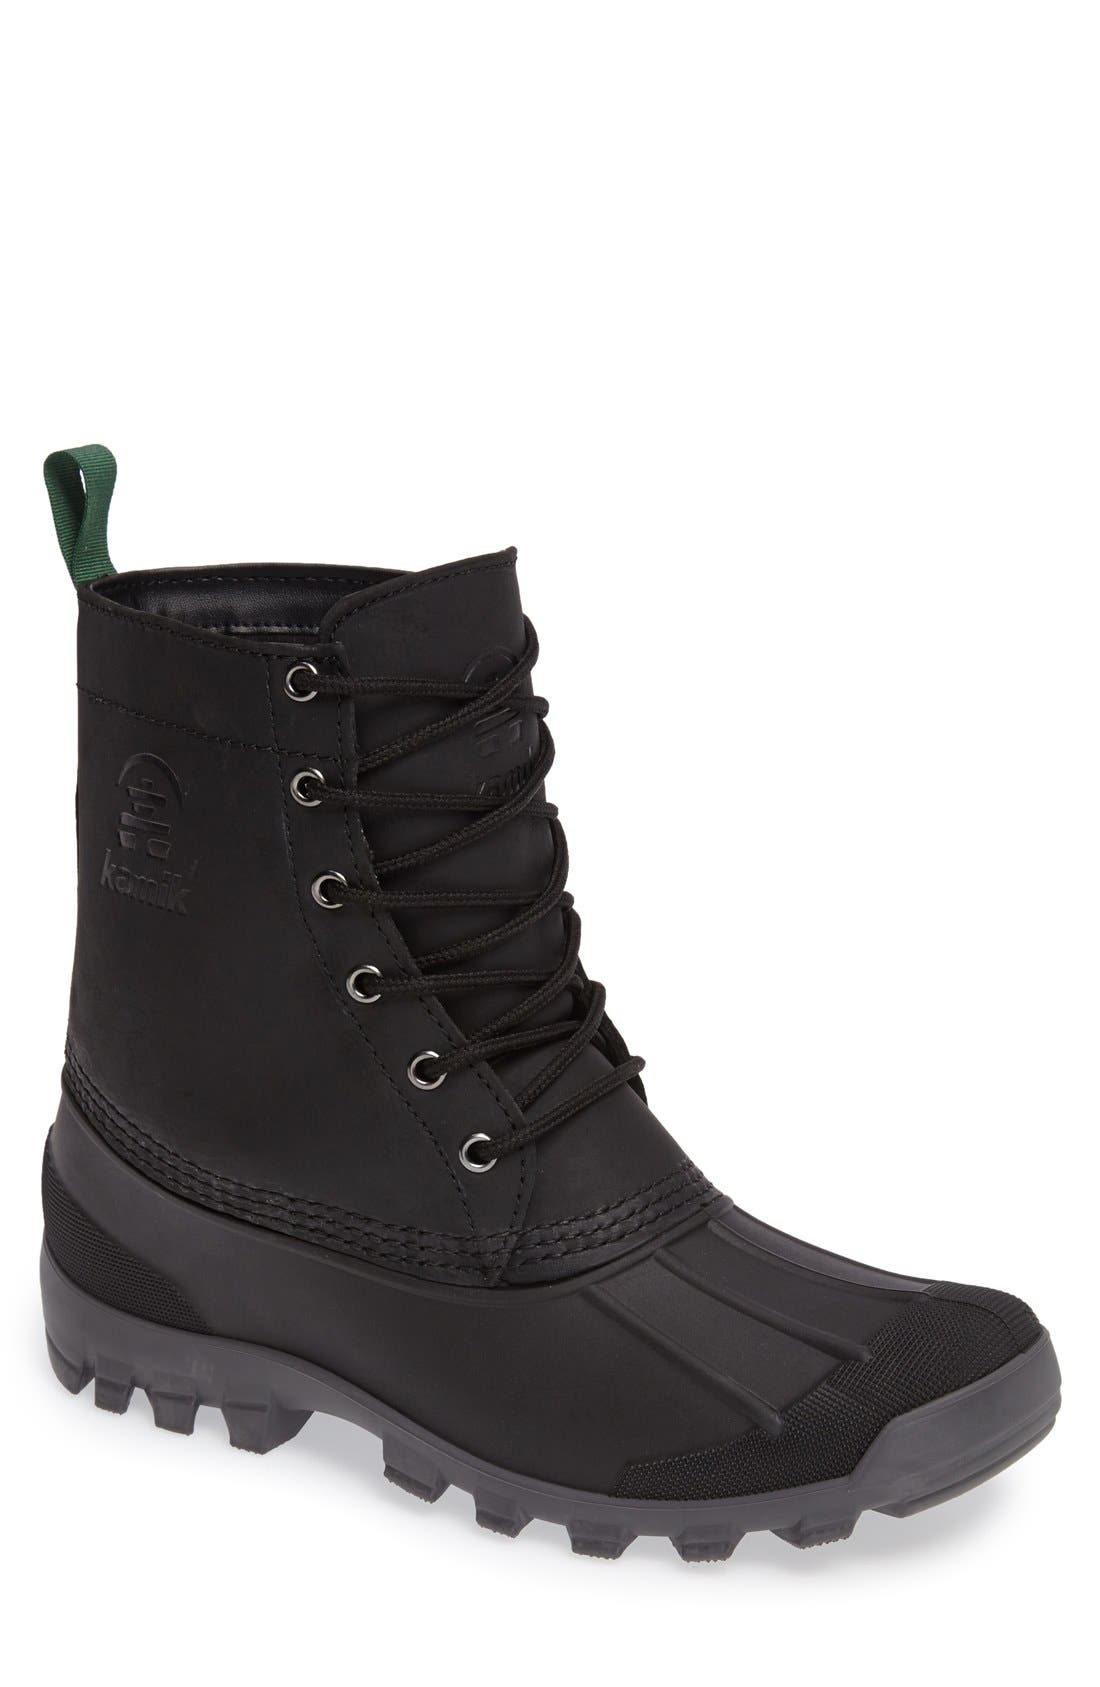 Main Image - Kamik Yukon6 Waterproof Work Boot (Men)